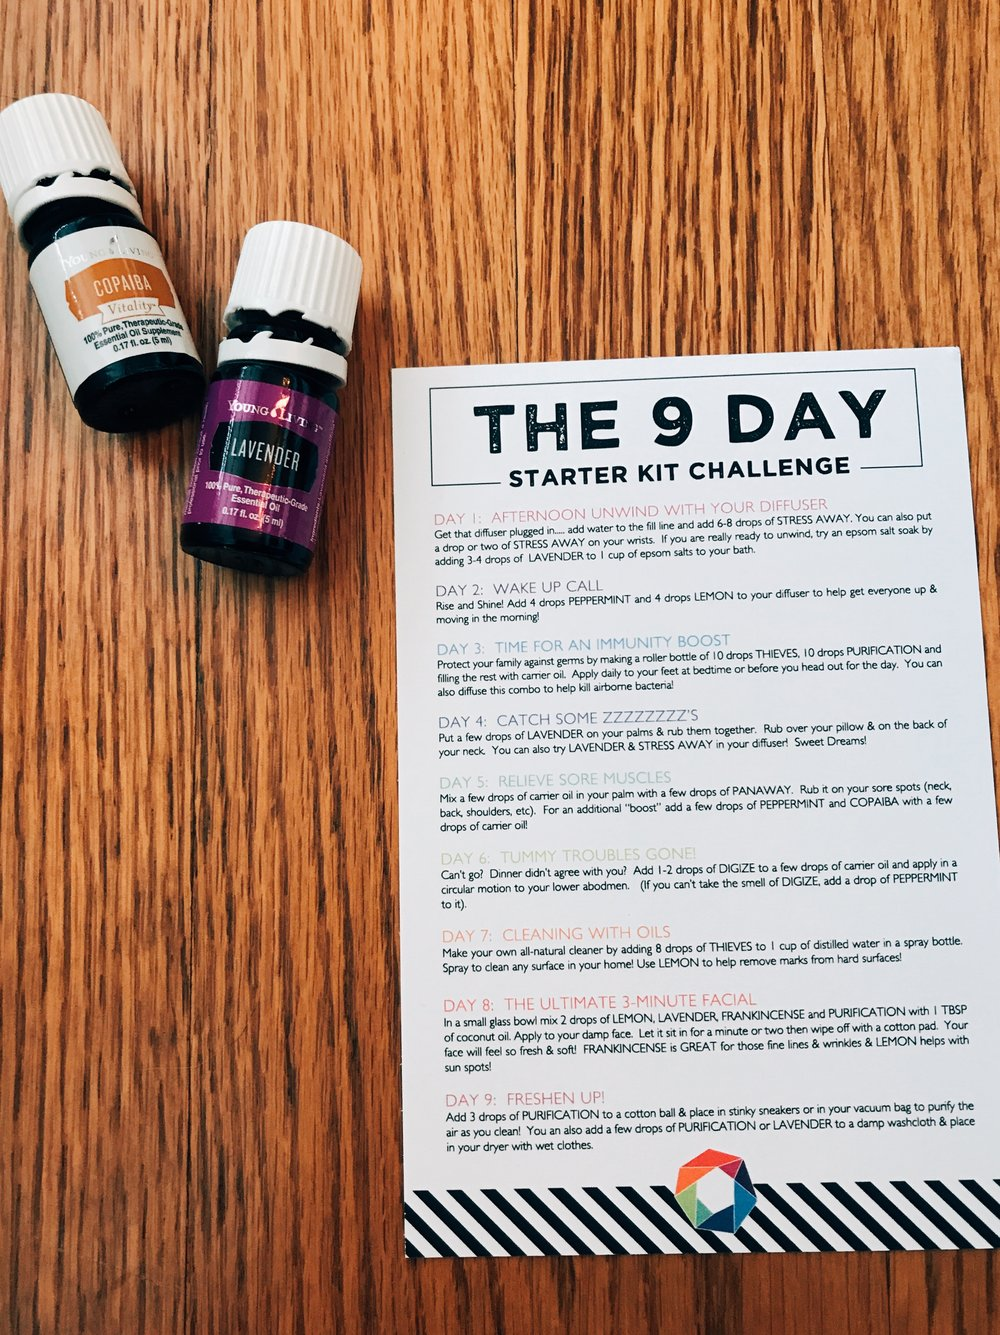 Here is a 9 Day Starter Kit Challenge. More way for you start using your kit right away!! Keep in mind, these are for  adults  and the  Young Living starter kit oils  specifically.